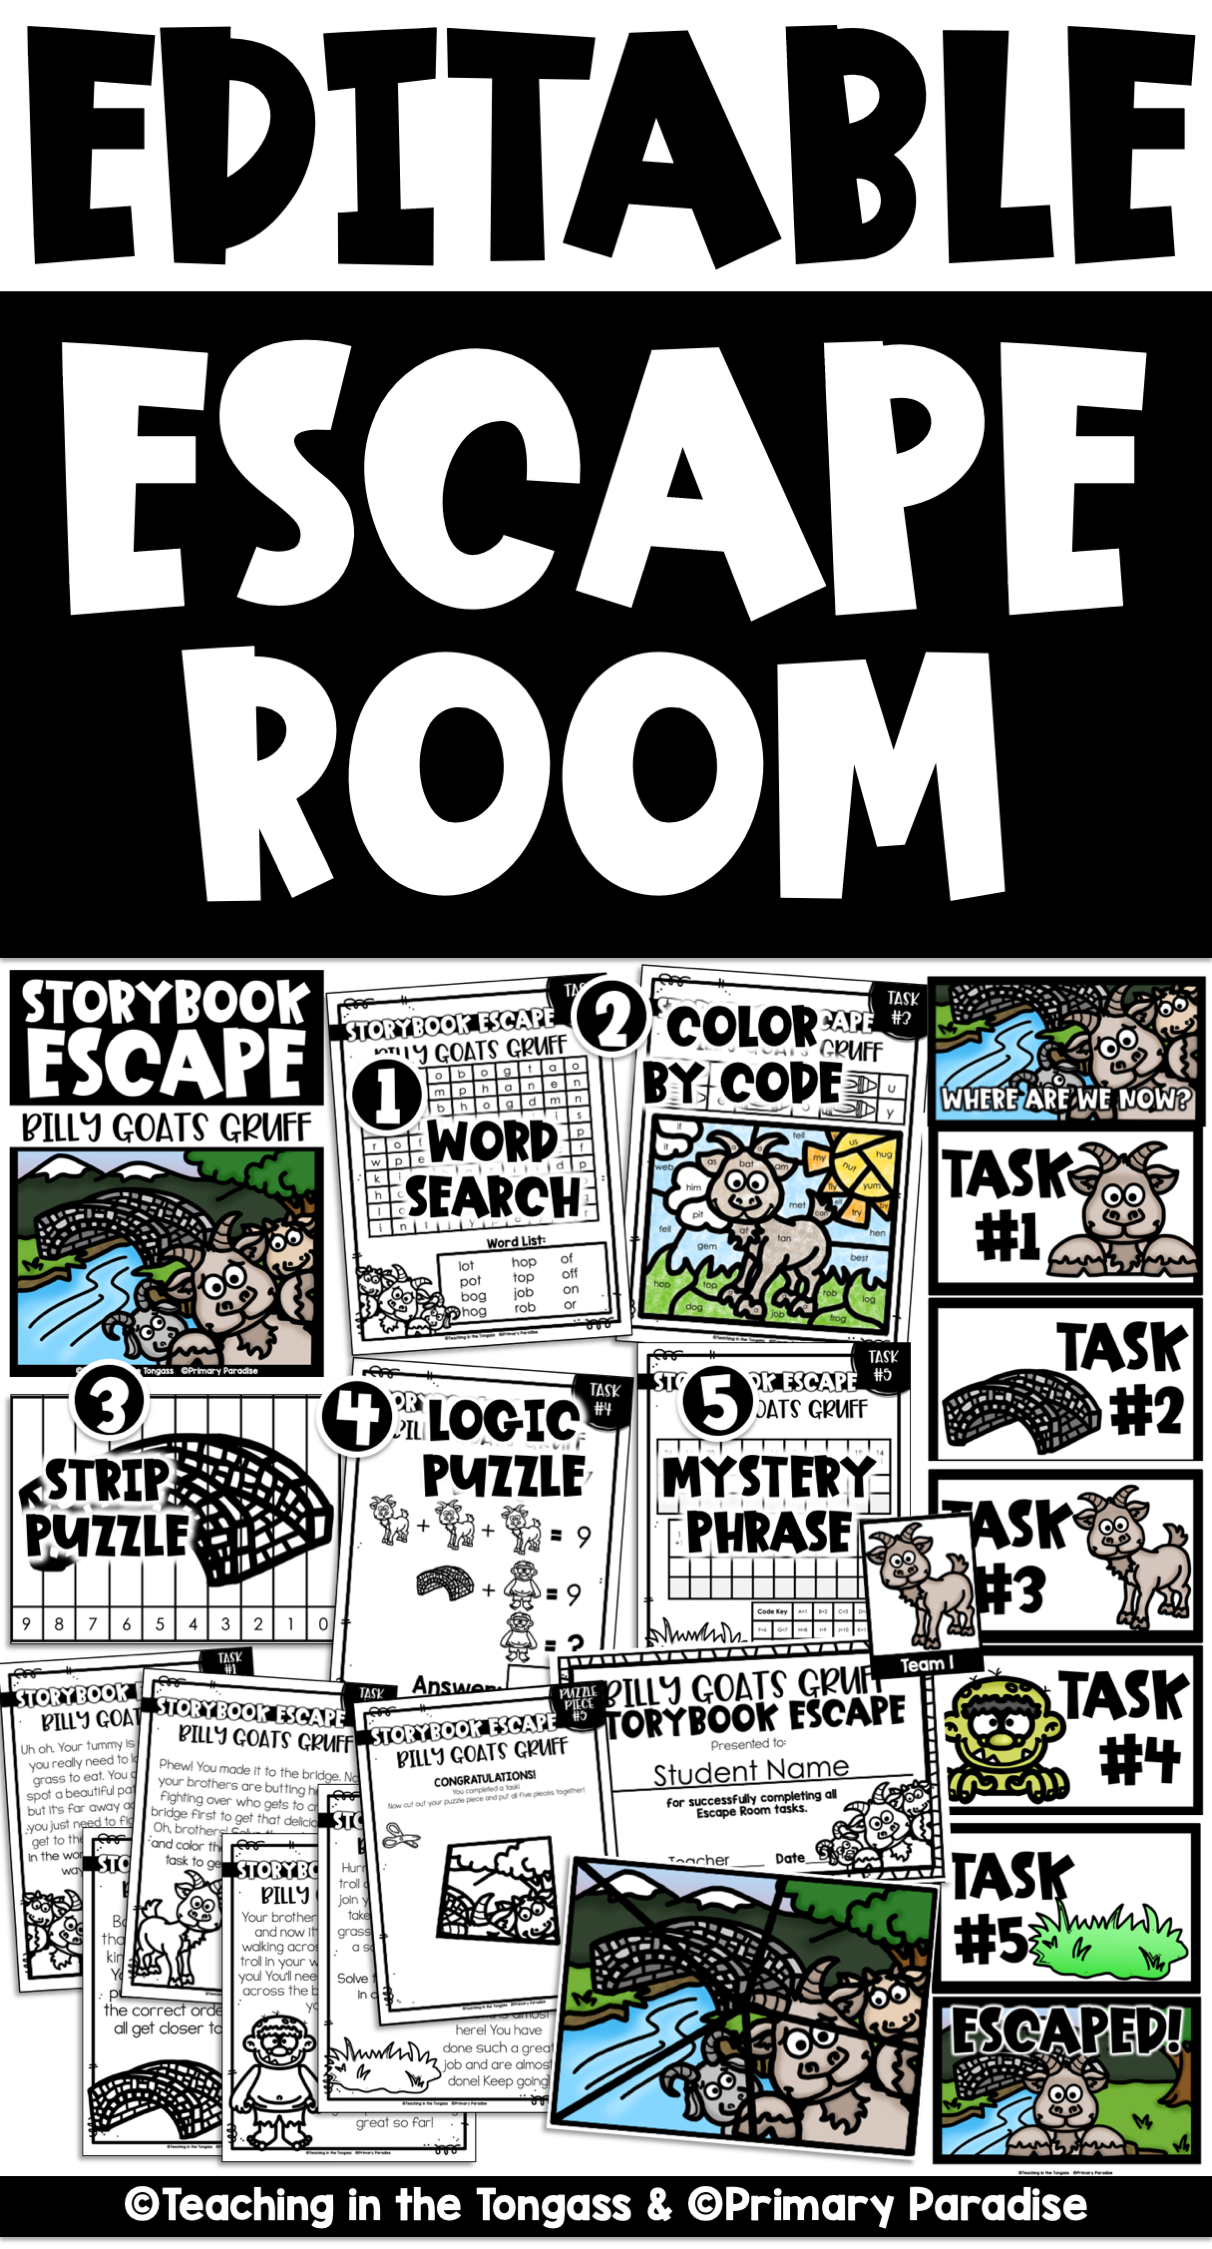 Bring Year Long Escape Room Fun To Your Classroom With